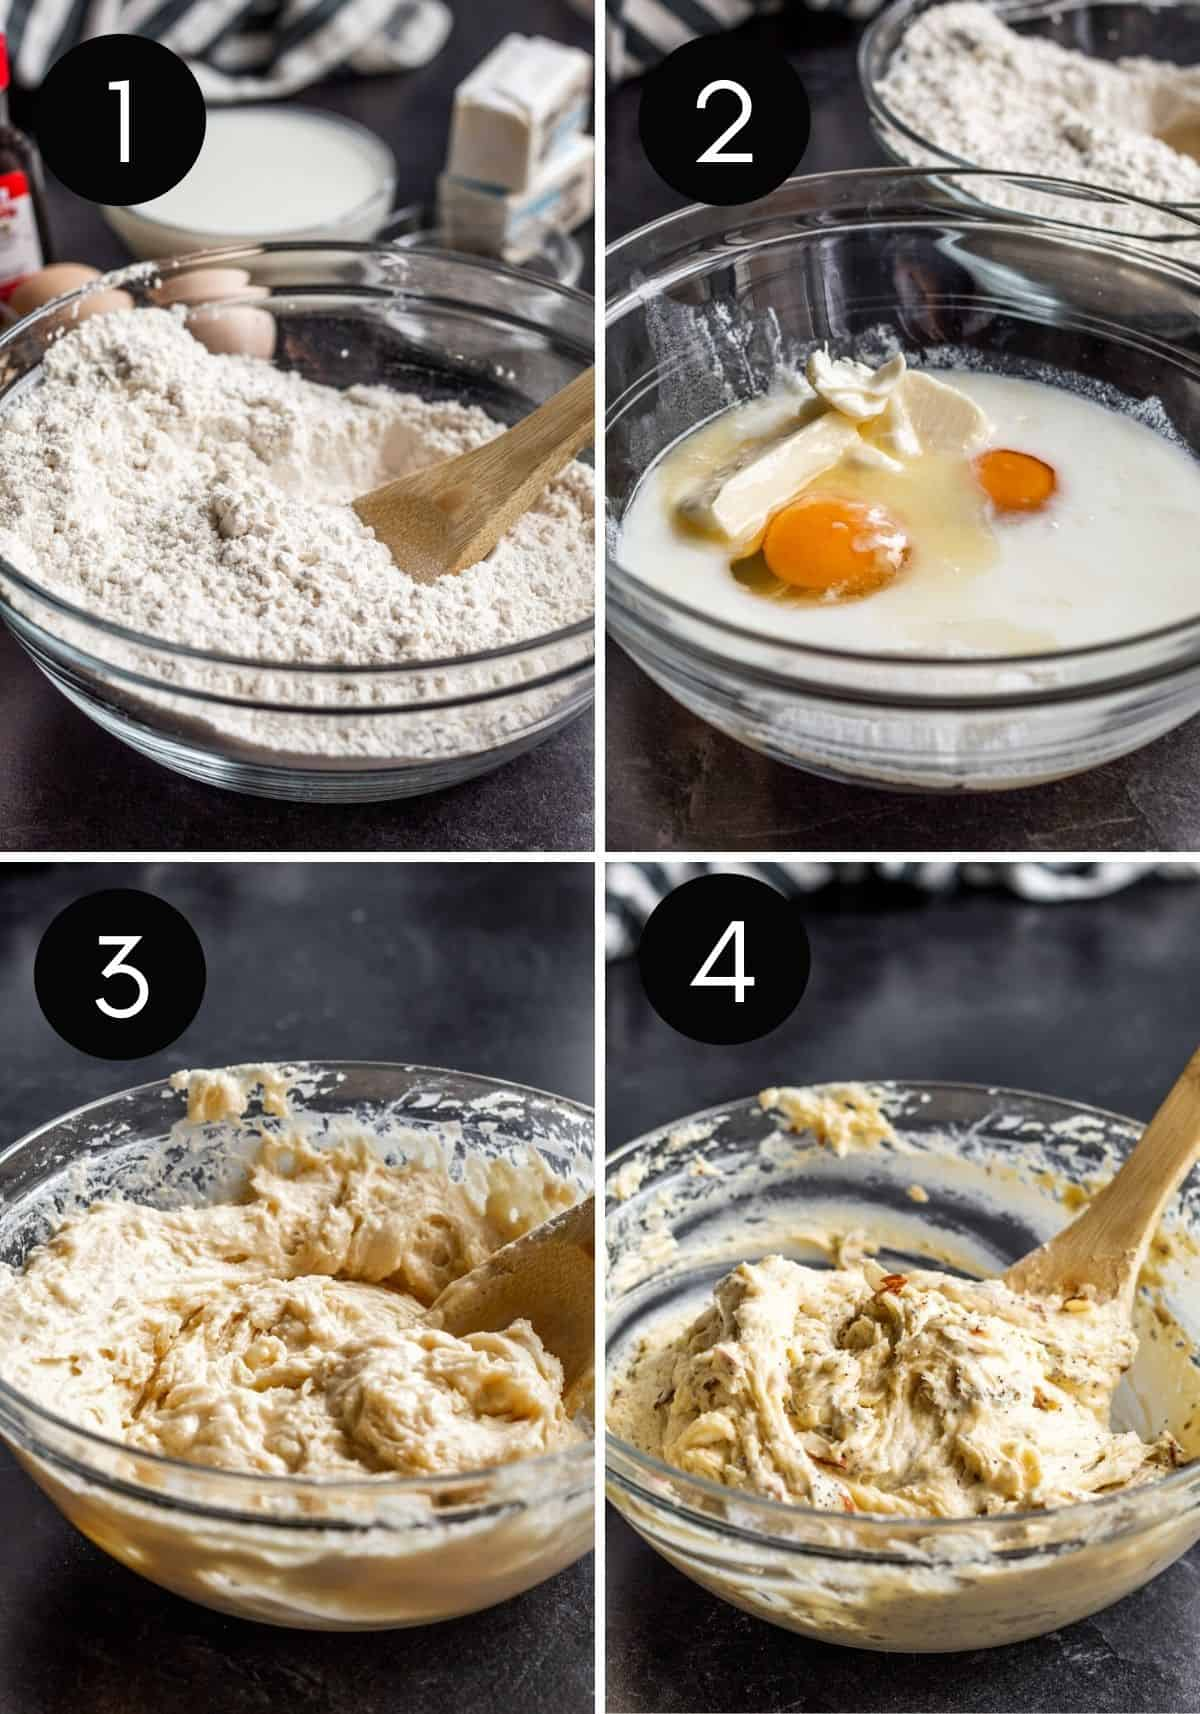 Four image prep collage showing poppy seed muffin batter being made.